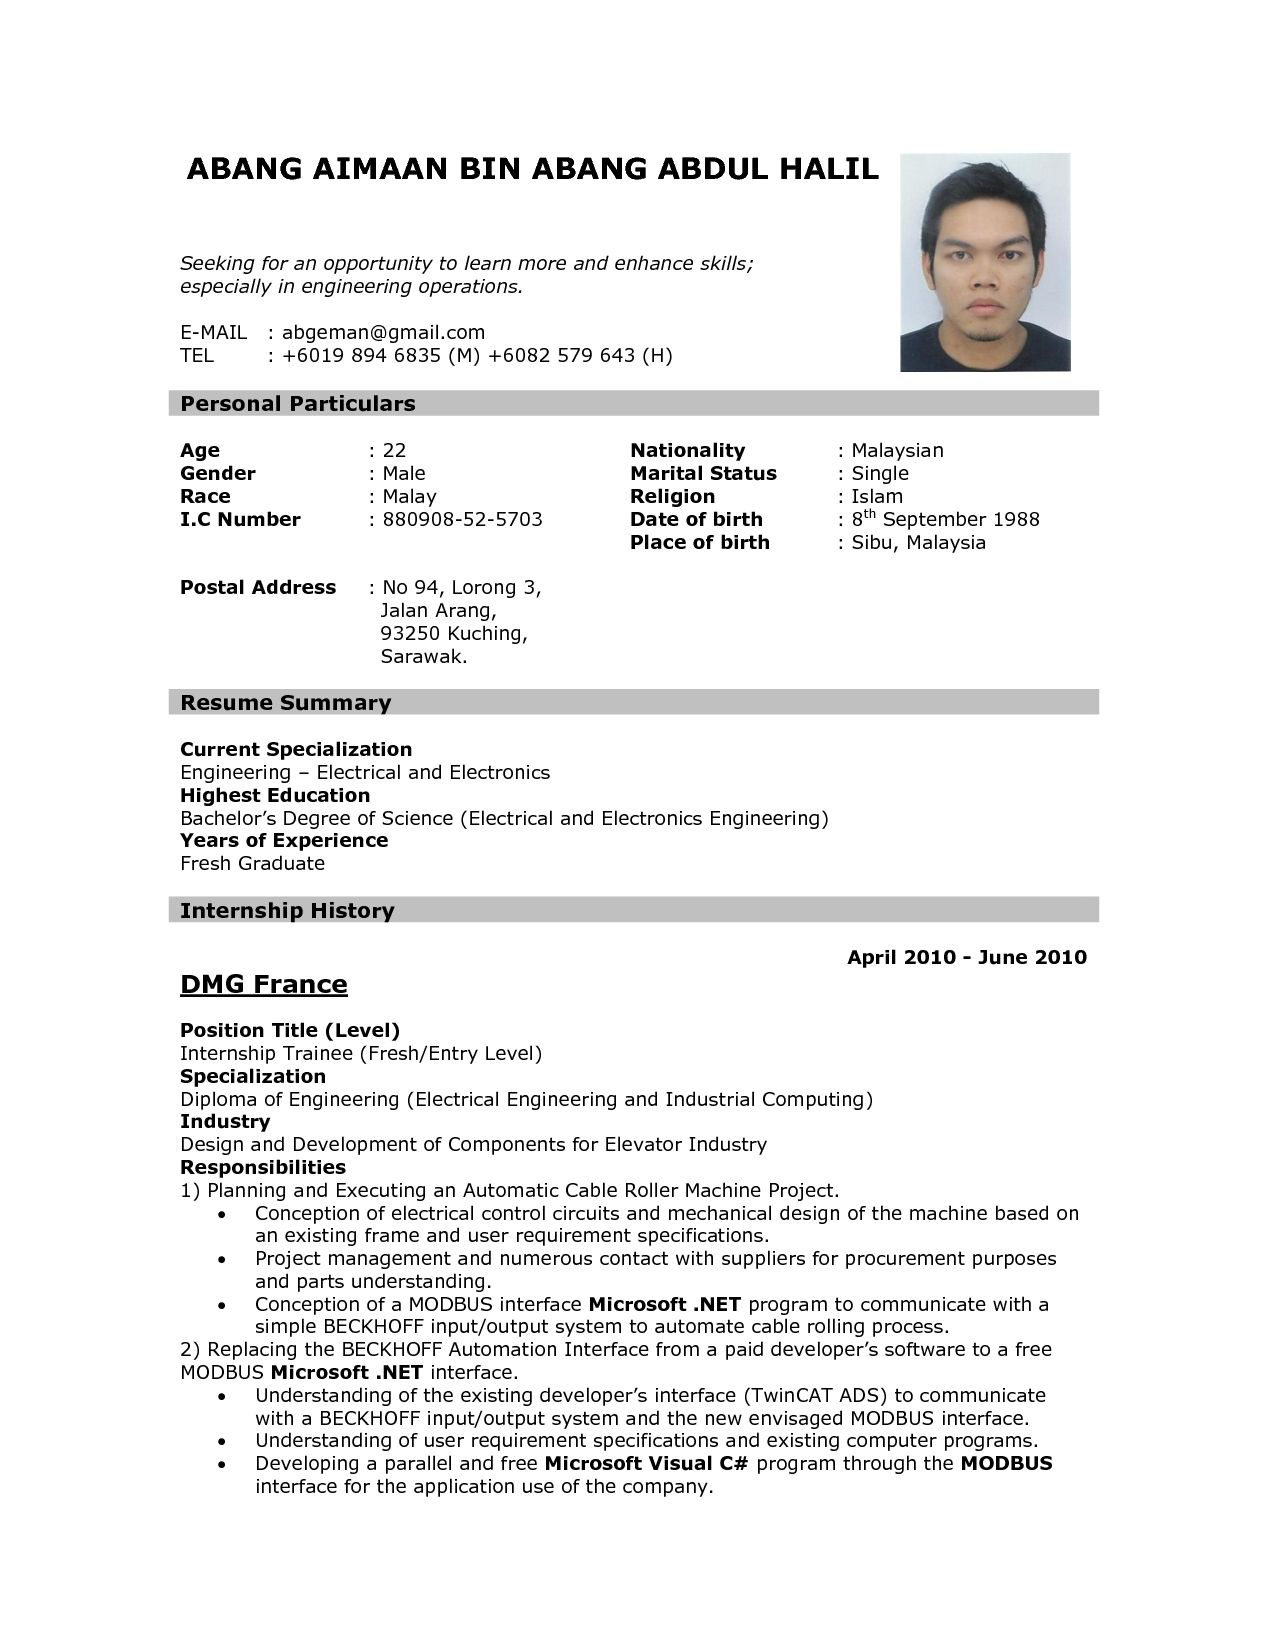 format of job resumes template format of job resumes